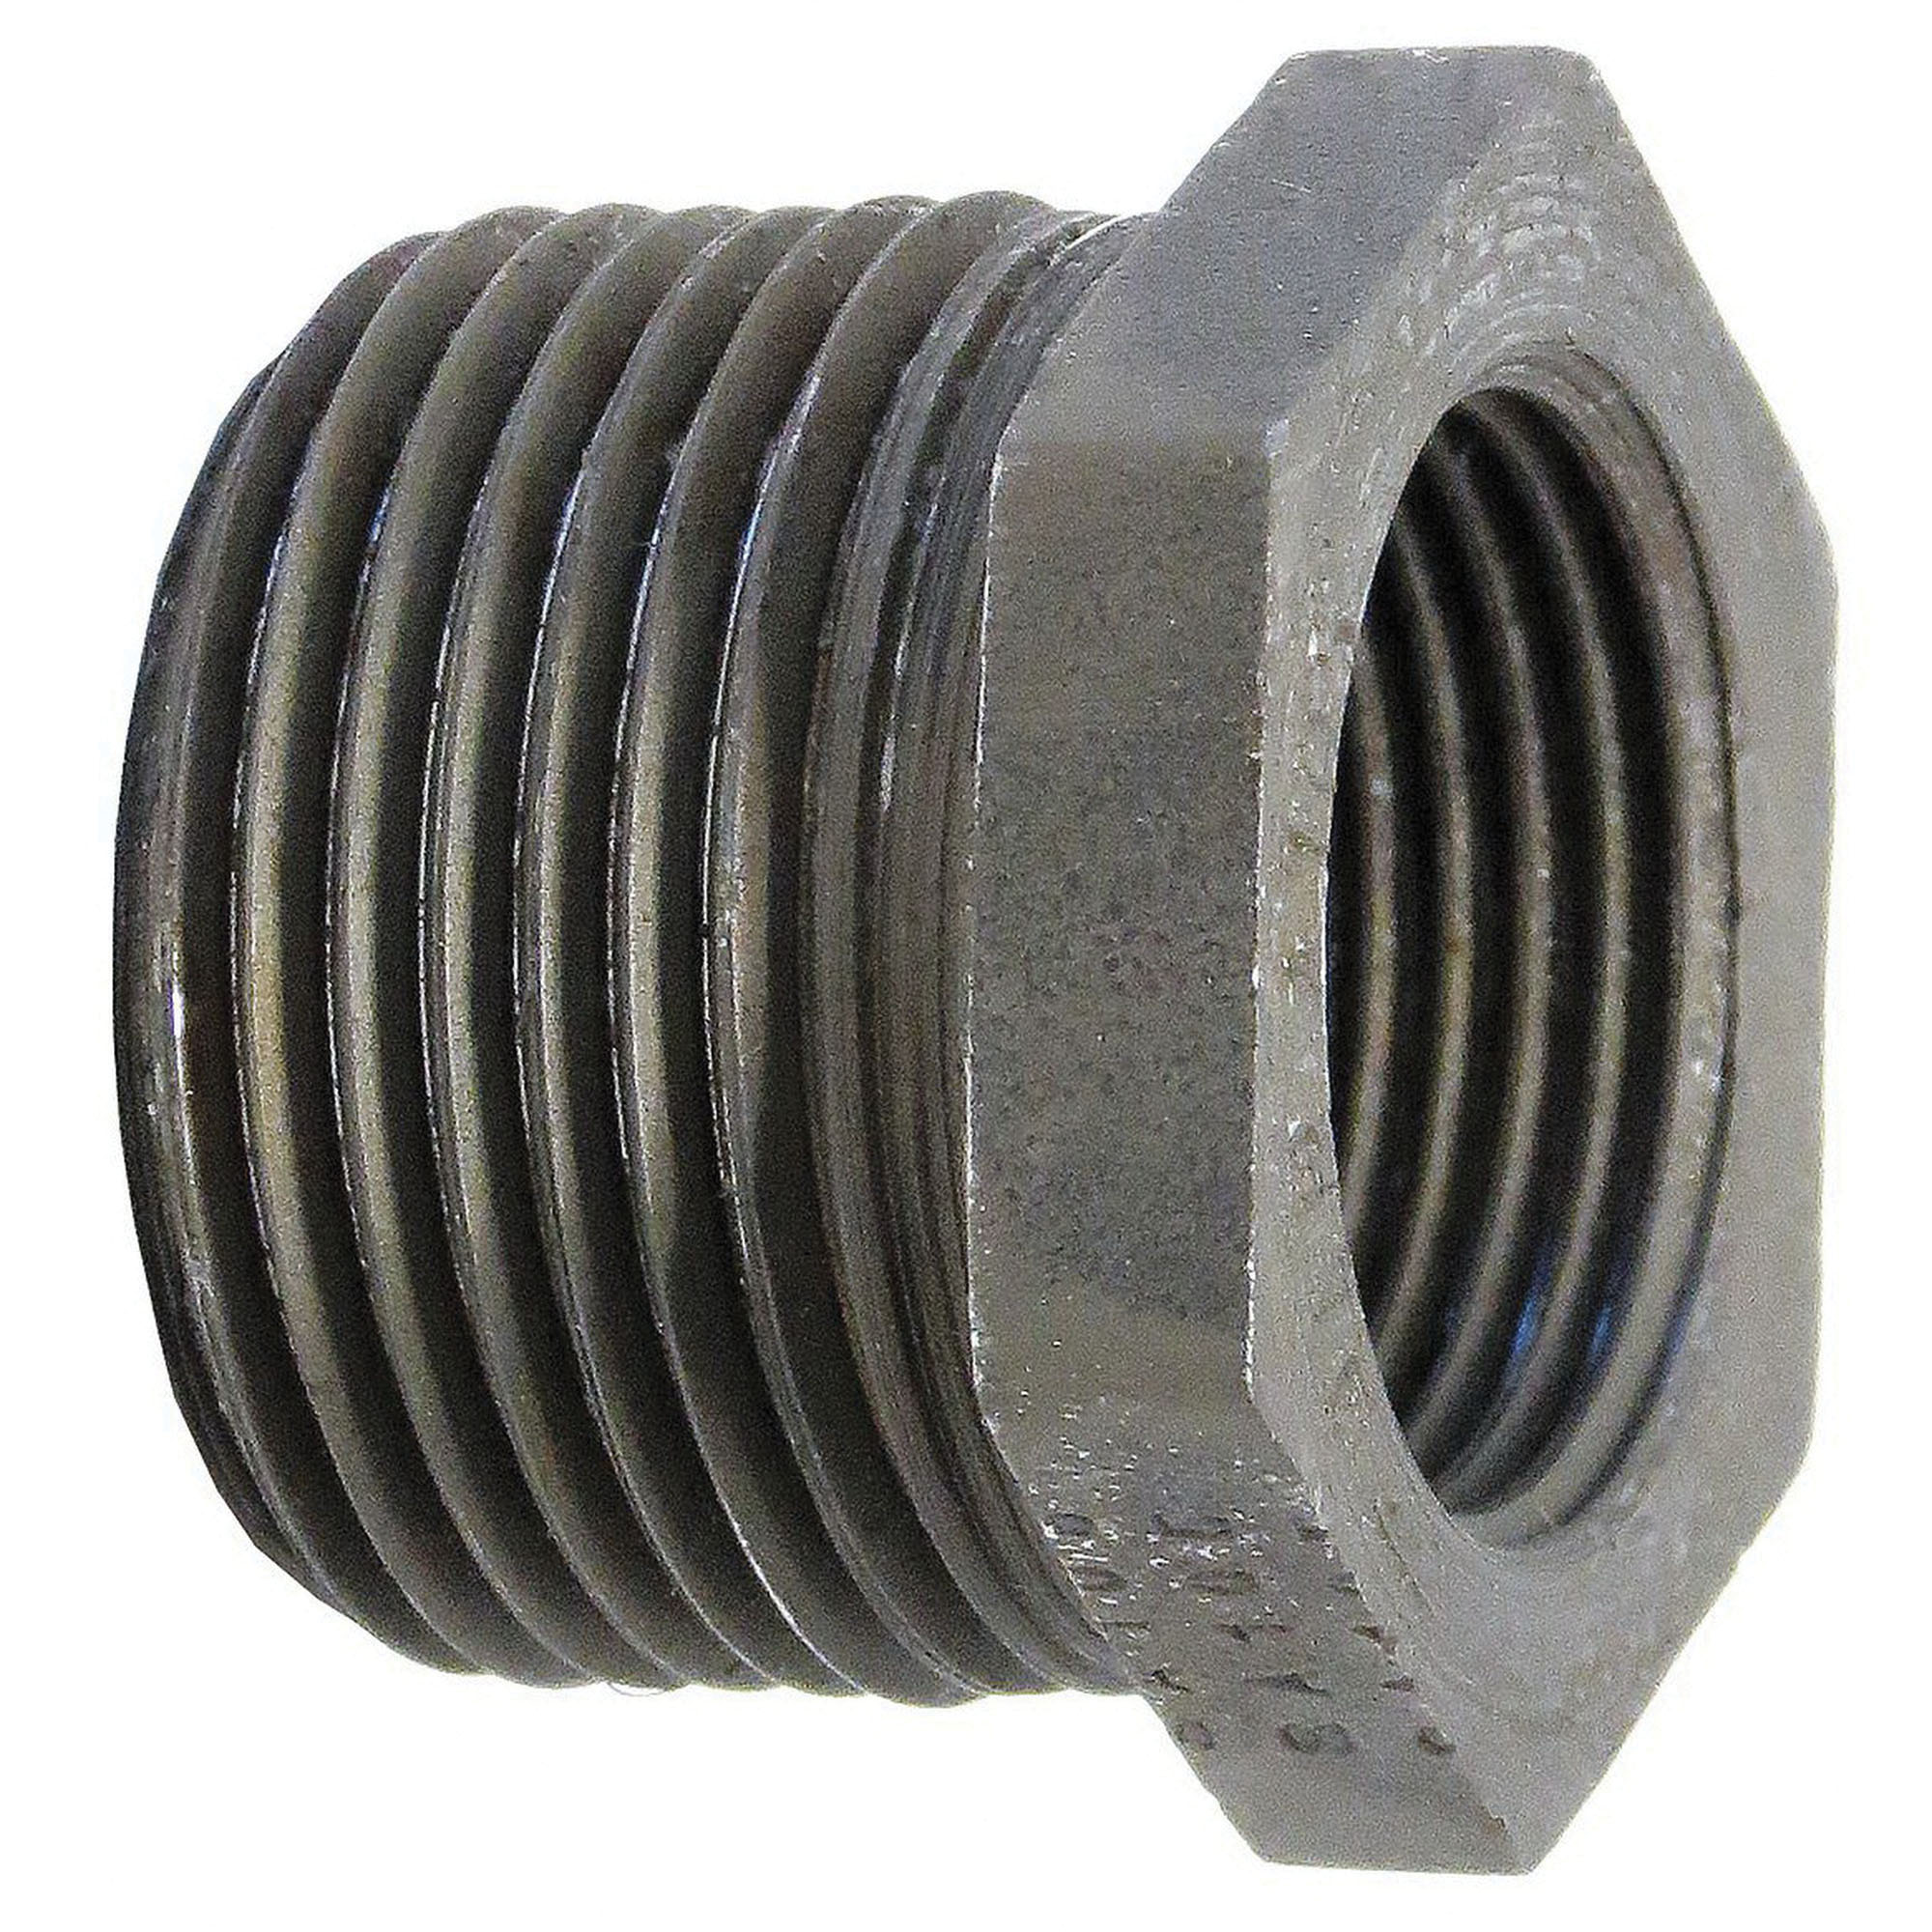 Steel Class 3000 Forged High Pressure Hex Bushing, 3/4 in x 1/2 in, MNPT x FNPT, Domestic, 50/CT